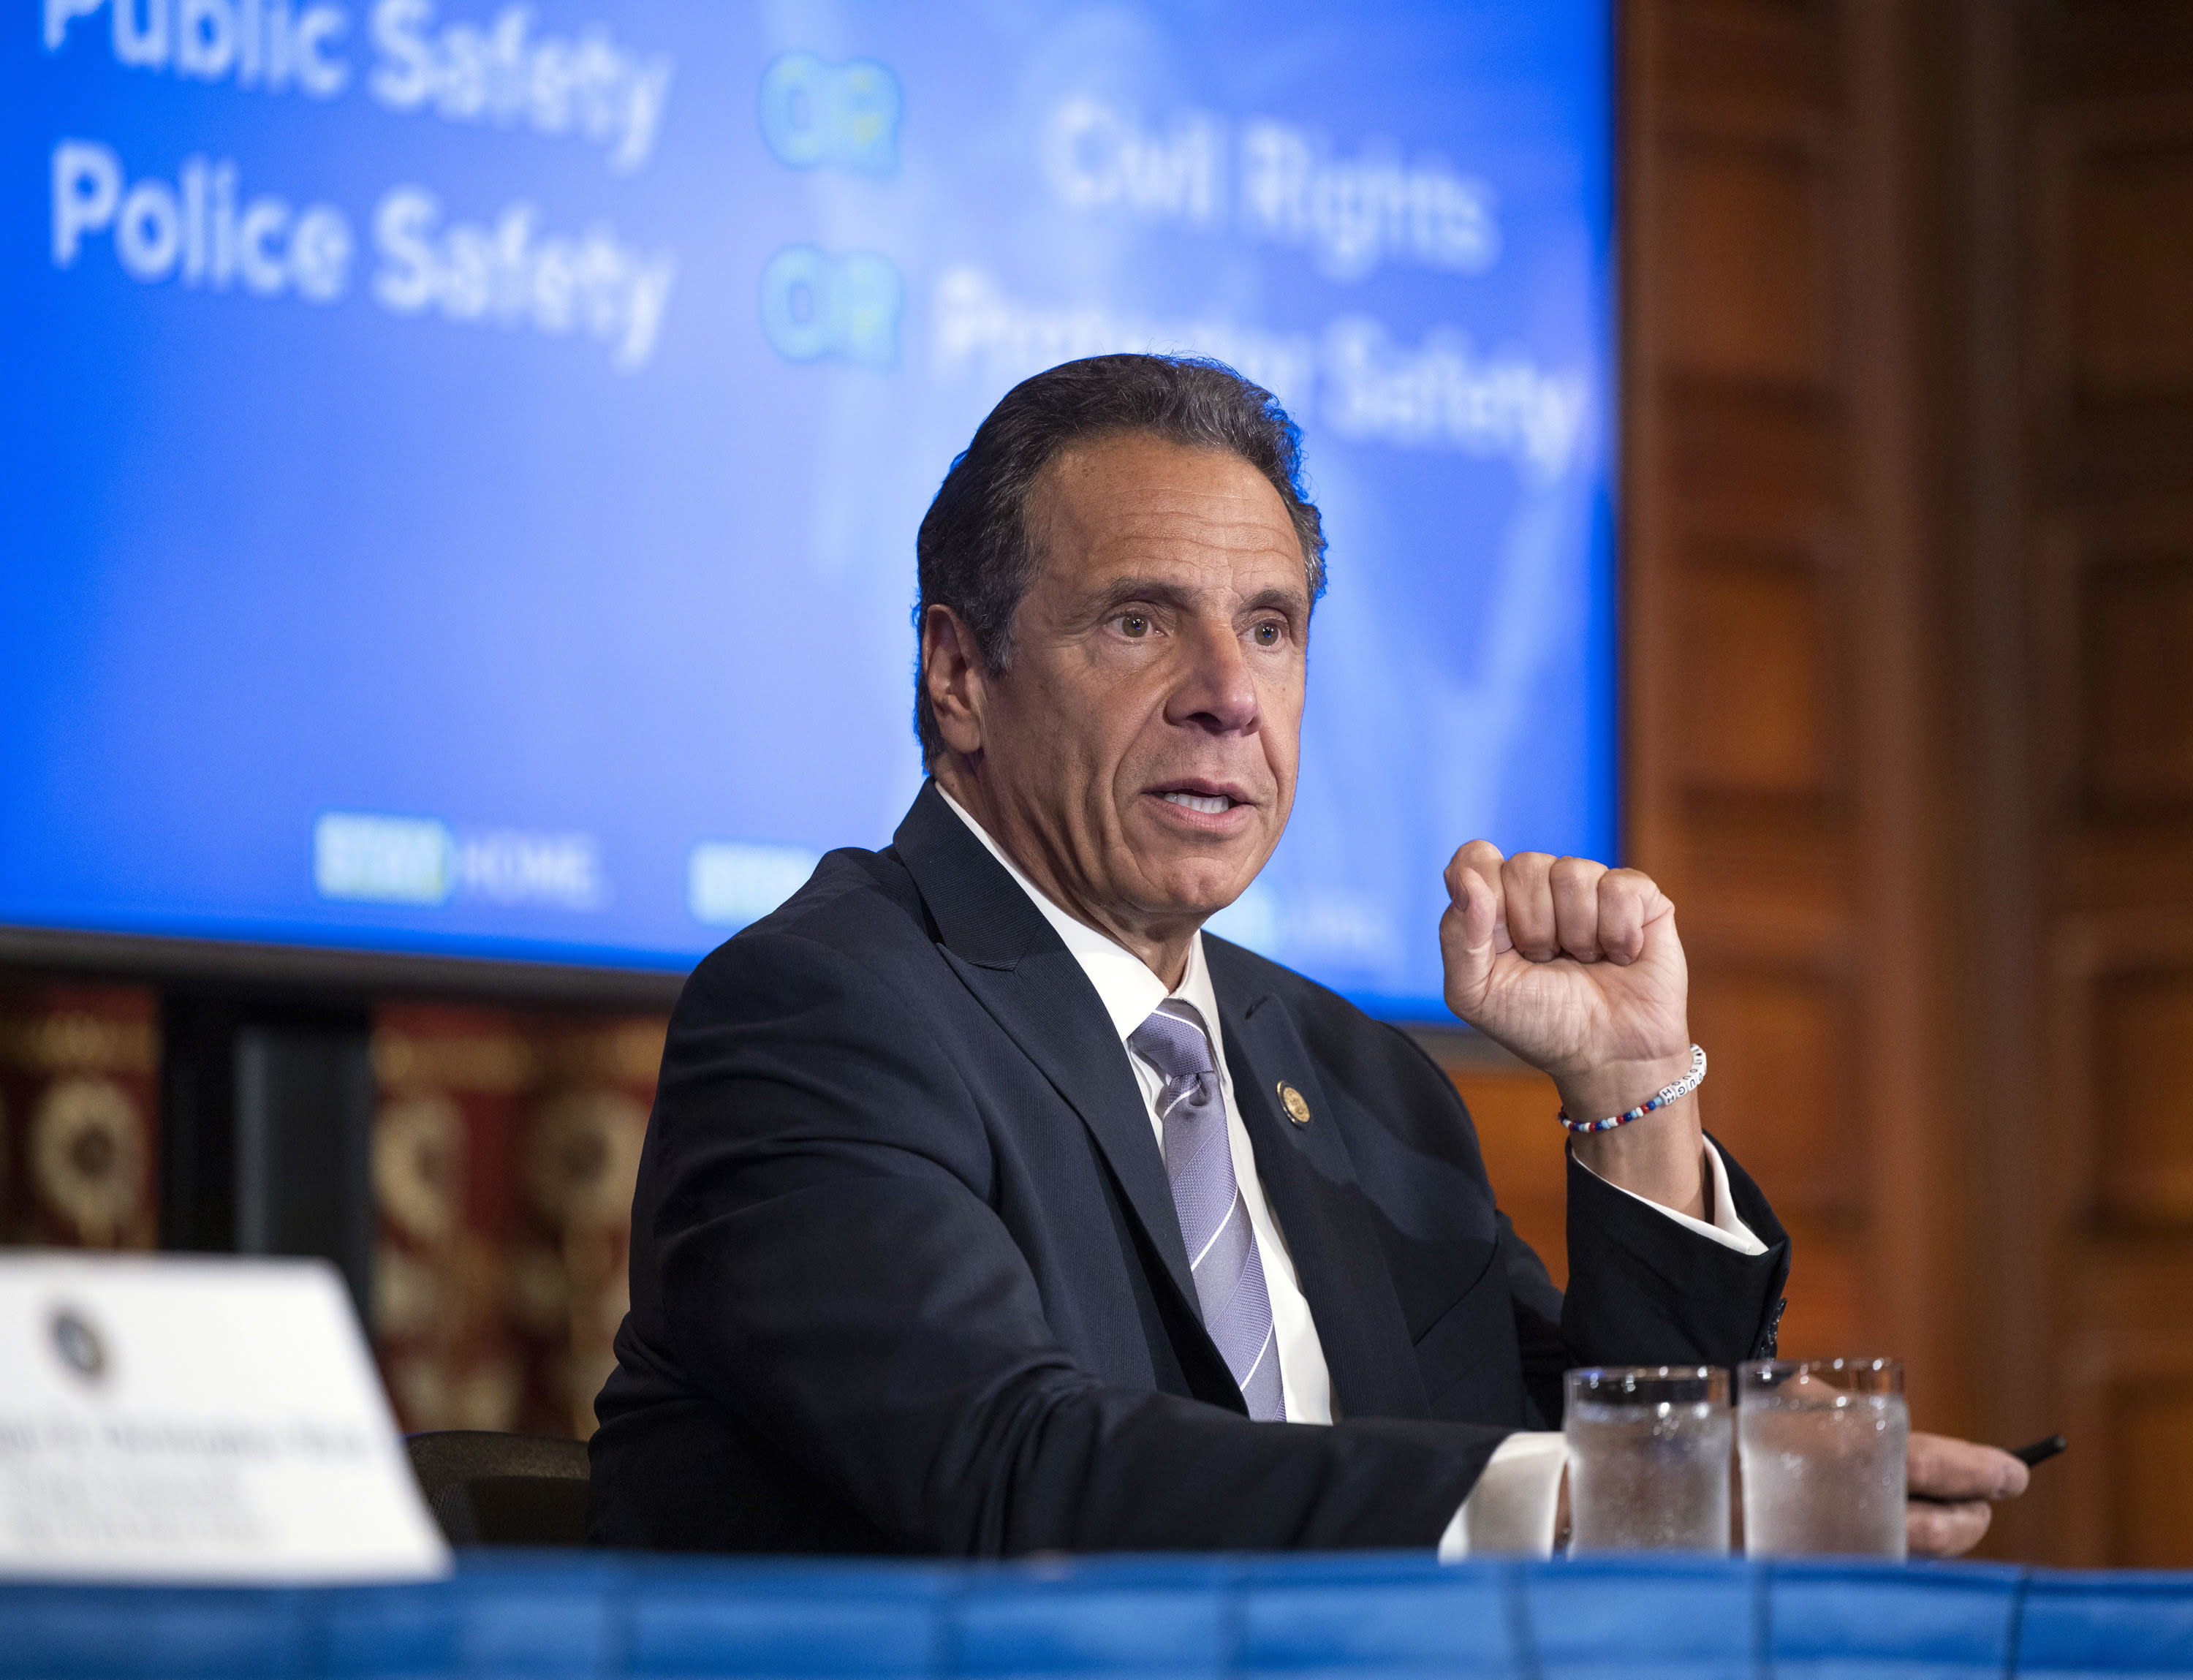 Cuomo tells Trump there's no need for federal authorities in NYC